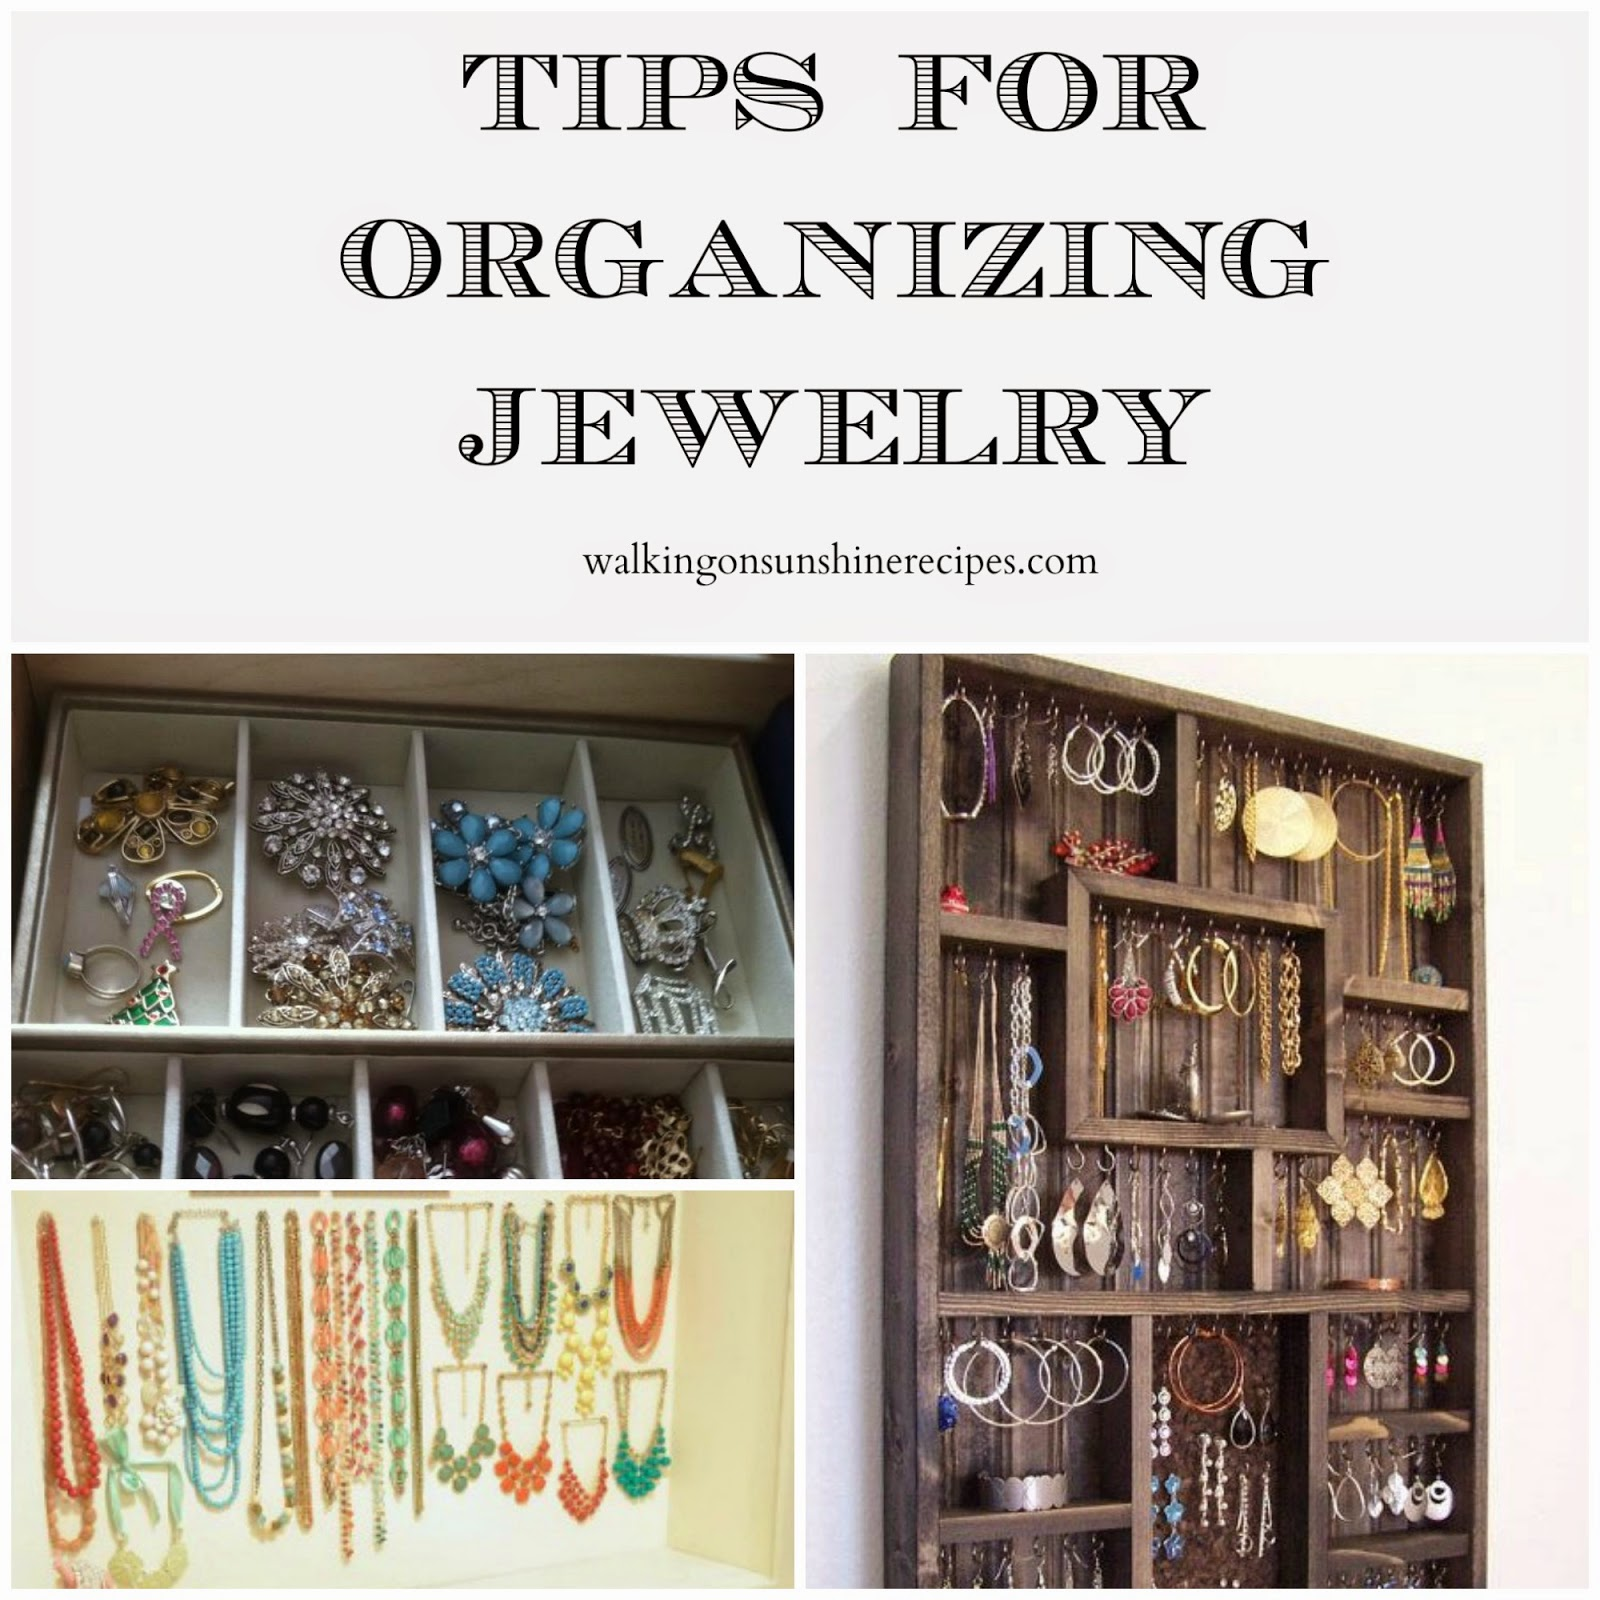 This week's Thursday's Tip is all about organizing jewelry from Walking on Sunshine Recipes.